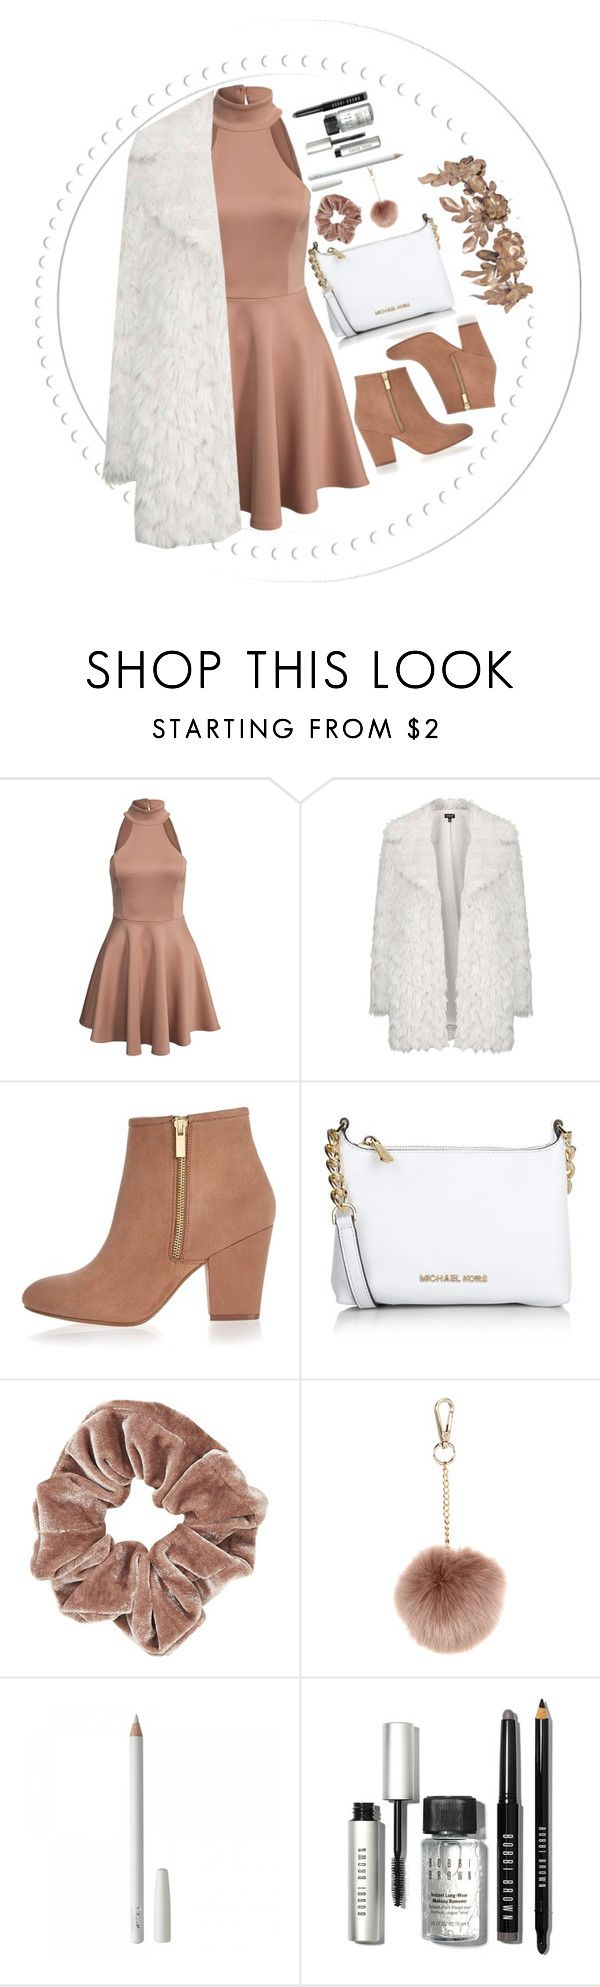 """""""little brown"""" by jfgs ❤ liked on Polyvore featuring Topshop, River Island, Michael Kors, Accessorize and Bobbi Brown Cosmetics"""